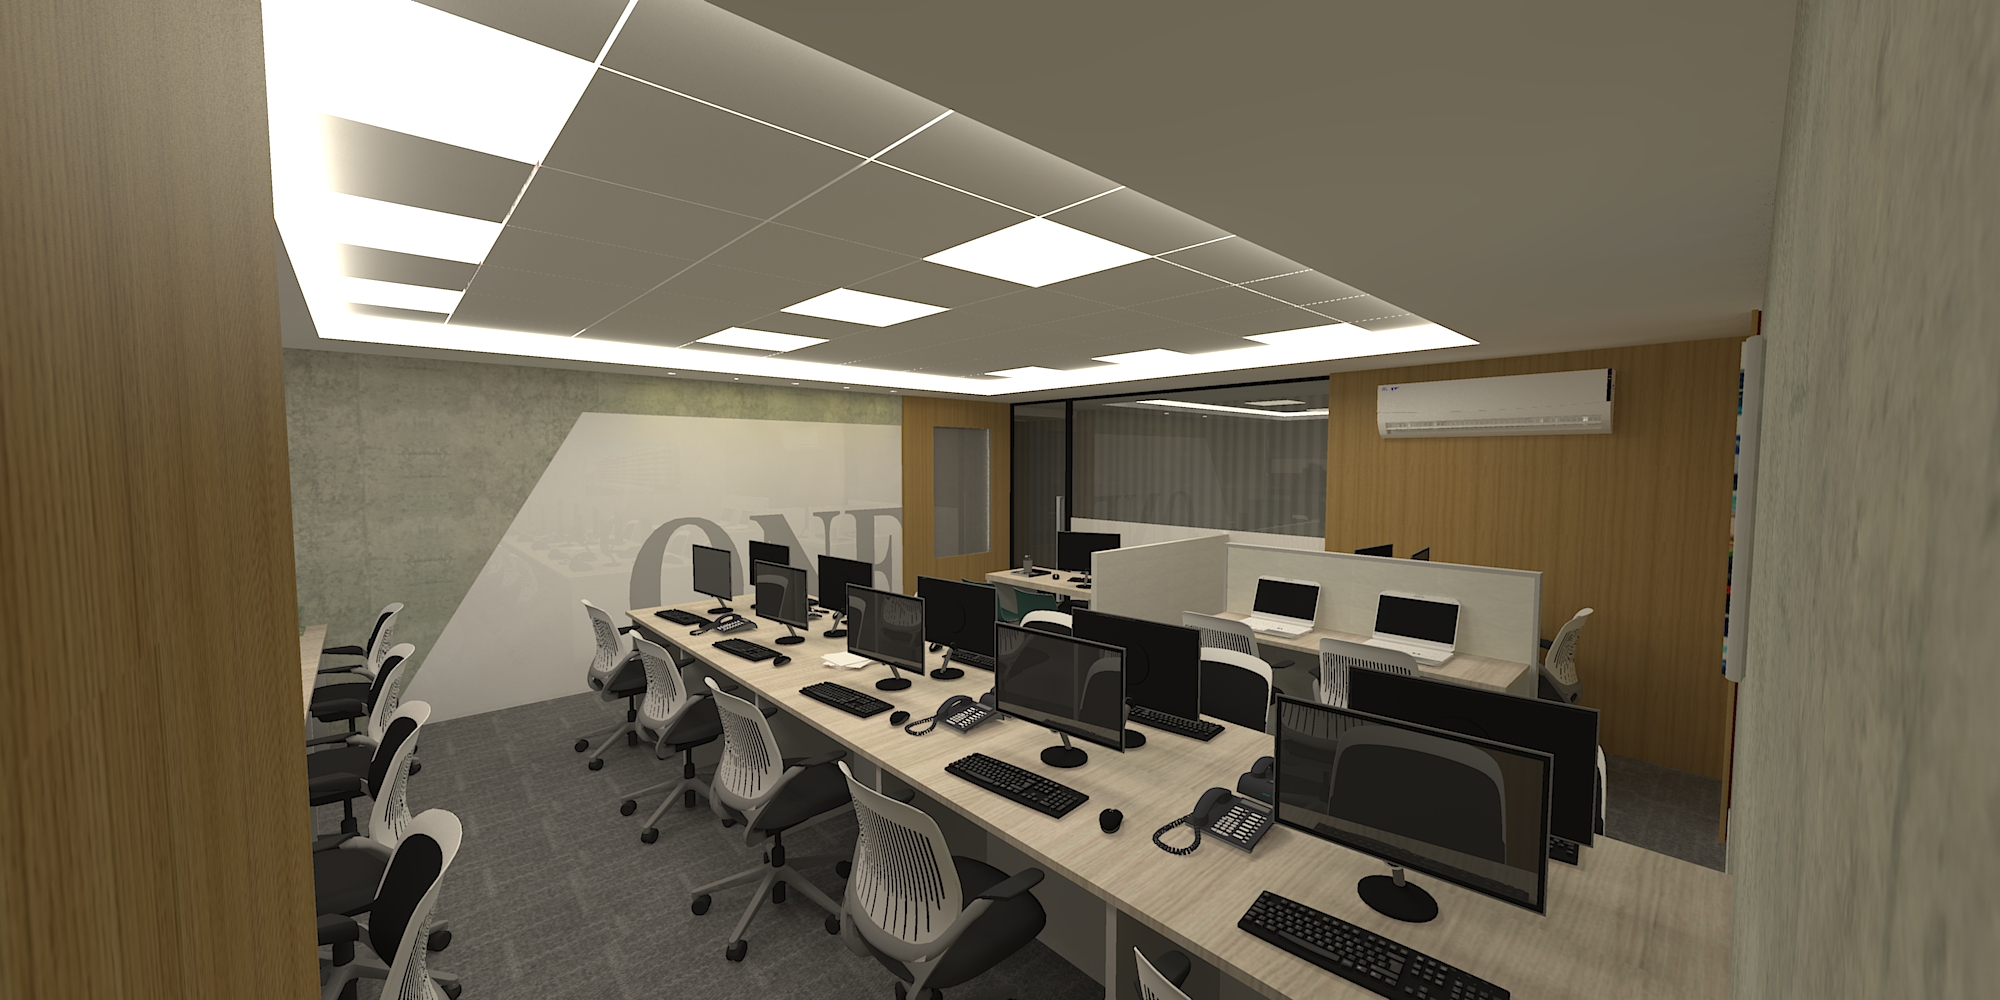 RE_Imobiliariaone_openoffice_01_V01